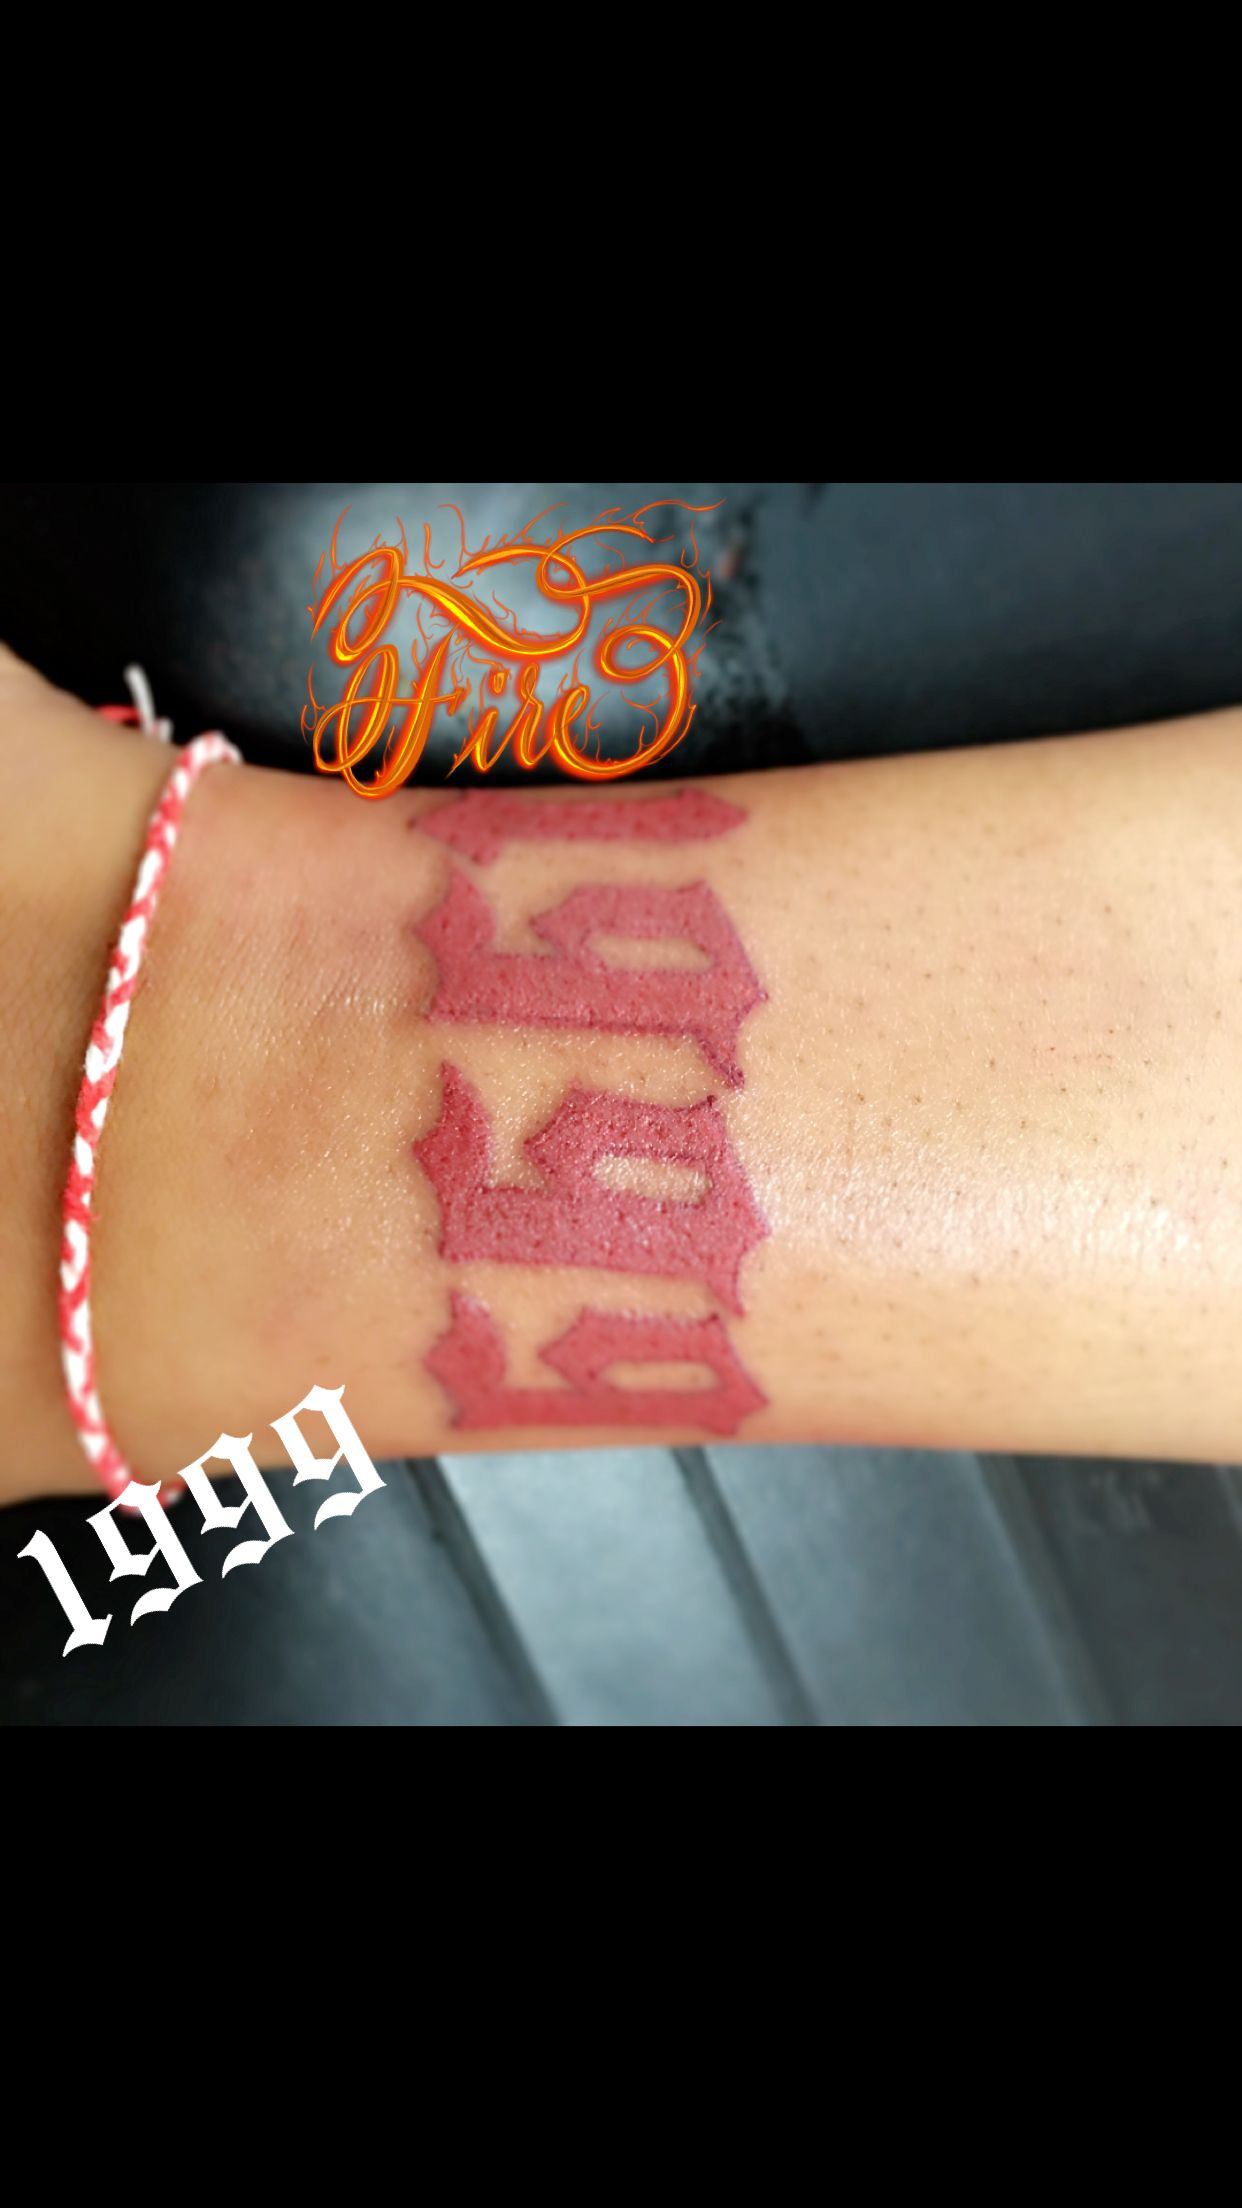 Birth Year 1999 Red Ink Tattoos Ankle Tattoos Dainty Tattoos